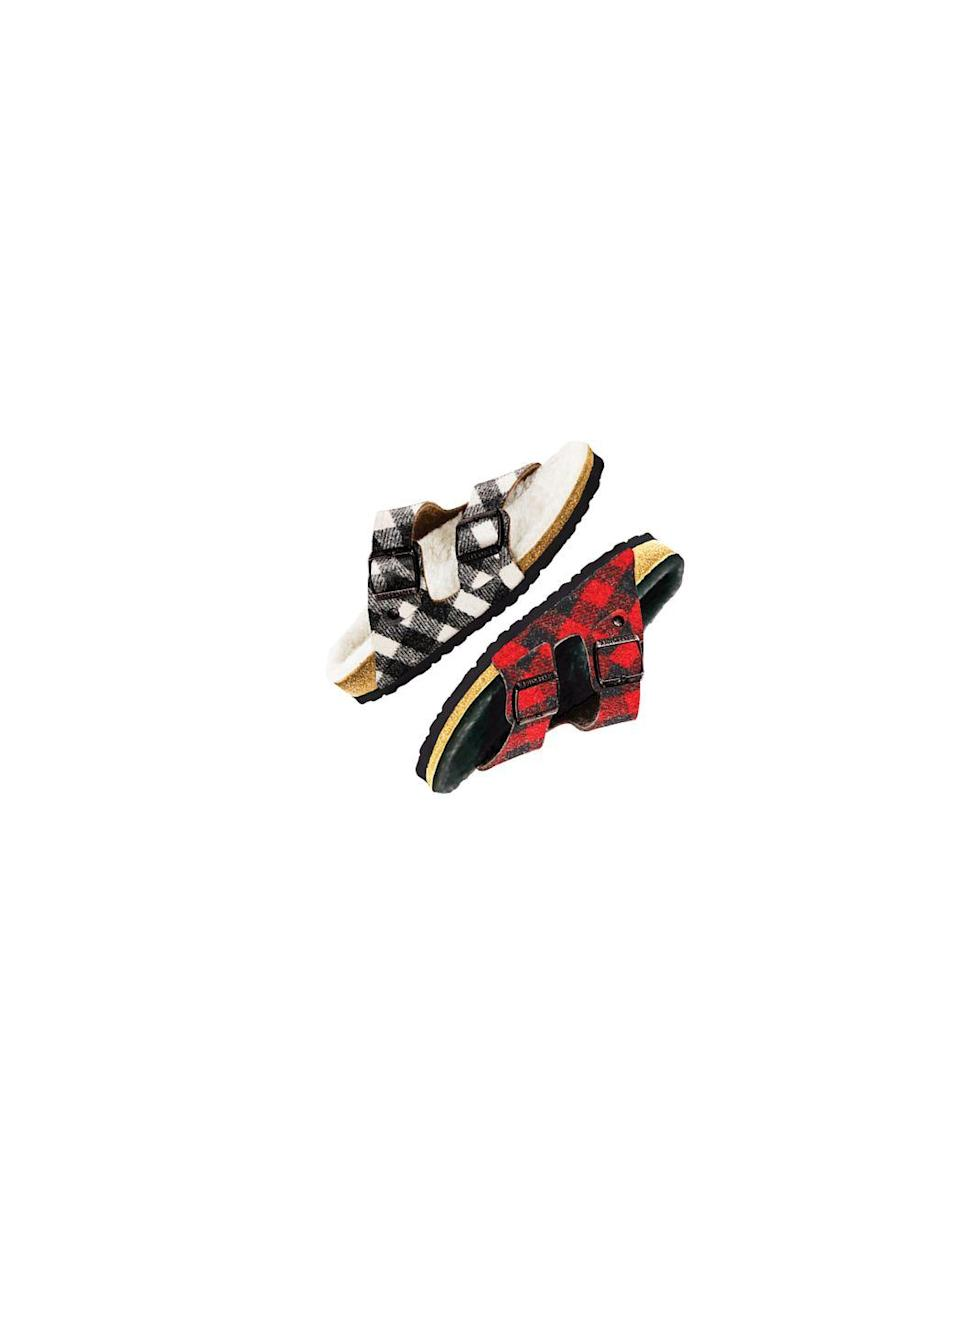 """<p>Sandal season can live on thanks to these cool weather plaid Birks. A snuggly layer of shearling lies atop the brand's signature anatomically shaped footbed.</p><p><em>Birkenstocks</em>, $125 per pair</p><p><a class=""""link rapid-noclick-resp"""" href=""""https://www.birkenstock.com/us/arizona-suede-leather/arizona-shearling-suedeleather-0-eva-u.html?dwvar_arizona-shearling-suedeleather-0-eva-u_color=49#q=shearling&sz=96"""" rel=""""nofollow noopener"""" target=""""_blank"""" data-ylk=""""slk:SHOP NOW"""">SHOP NOW</a></p>"""